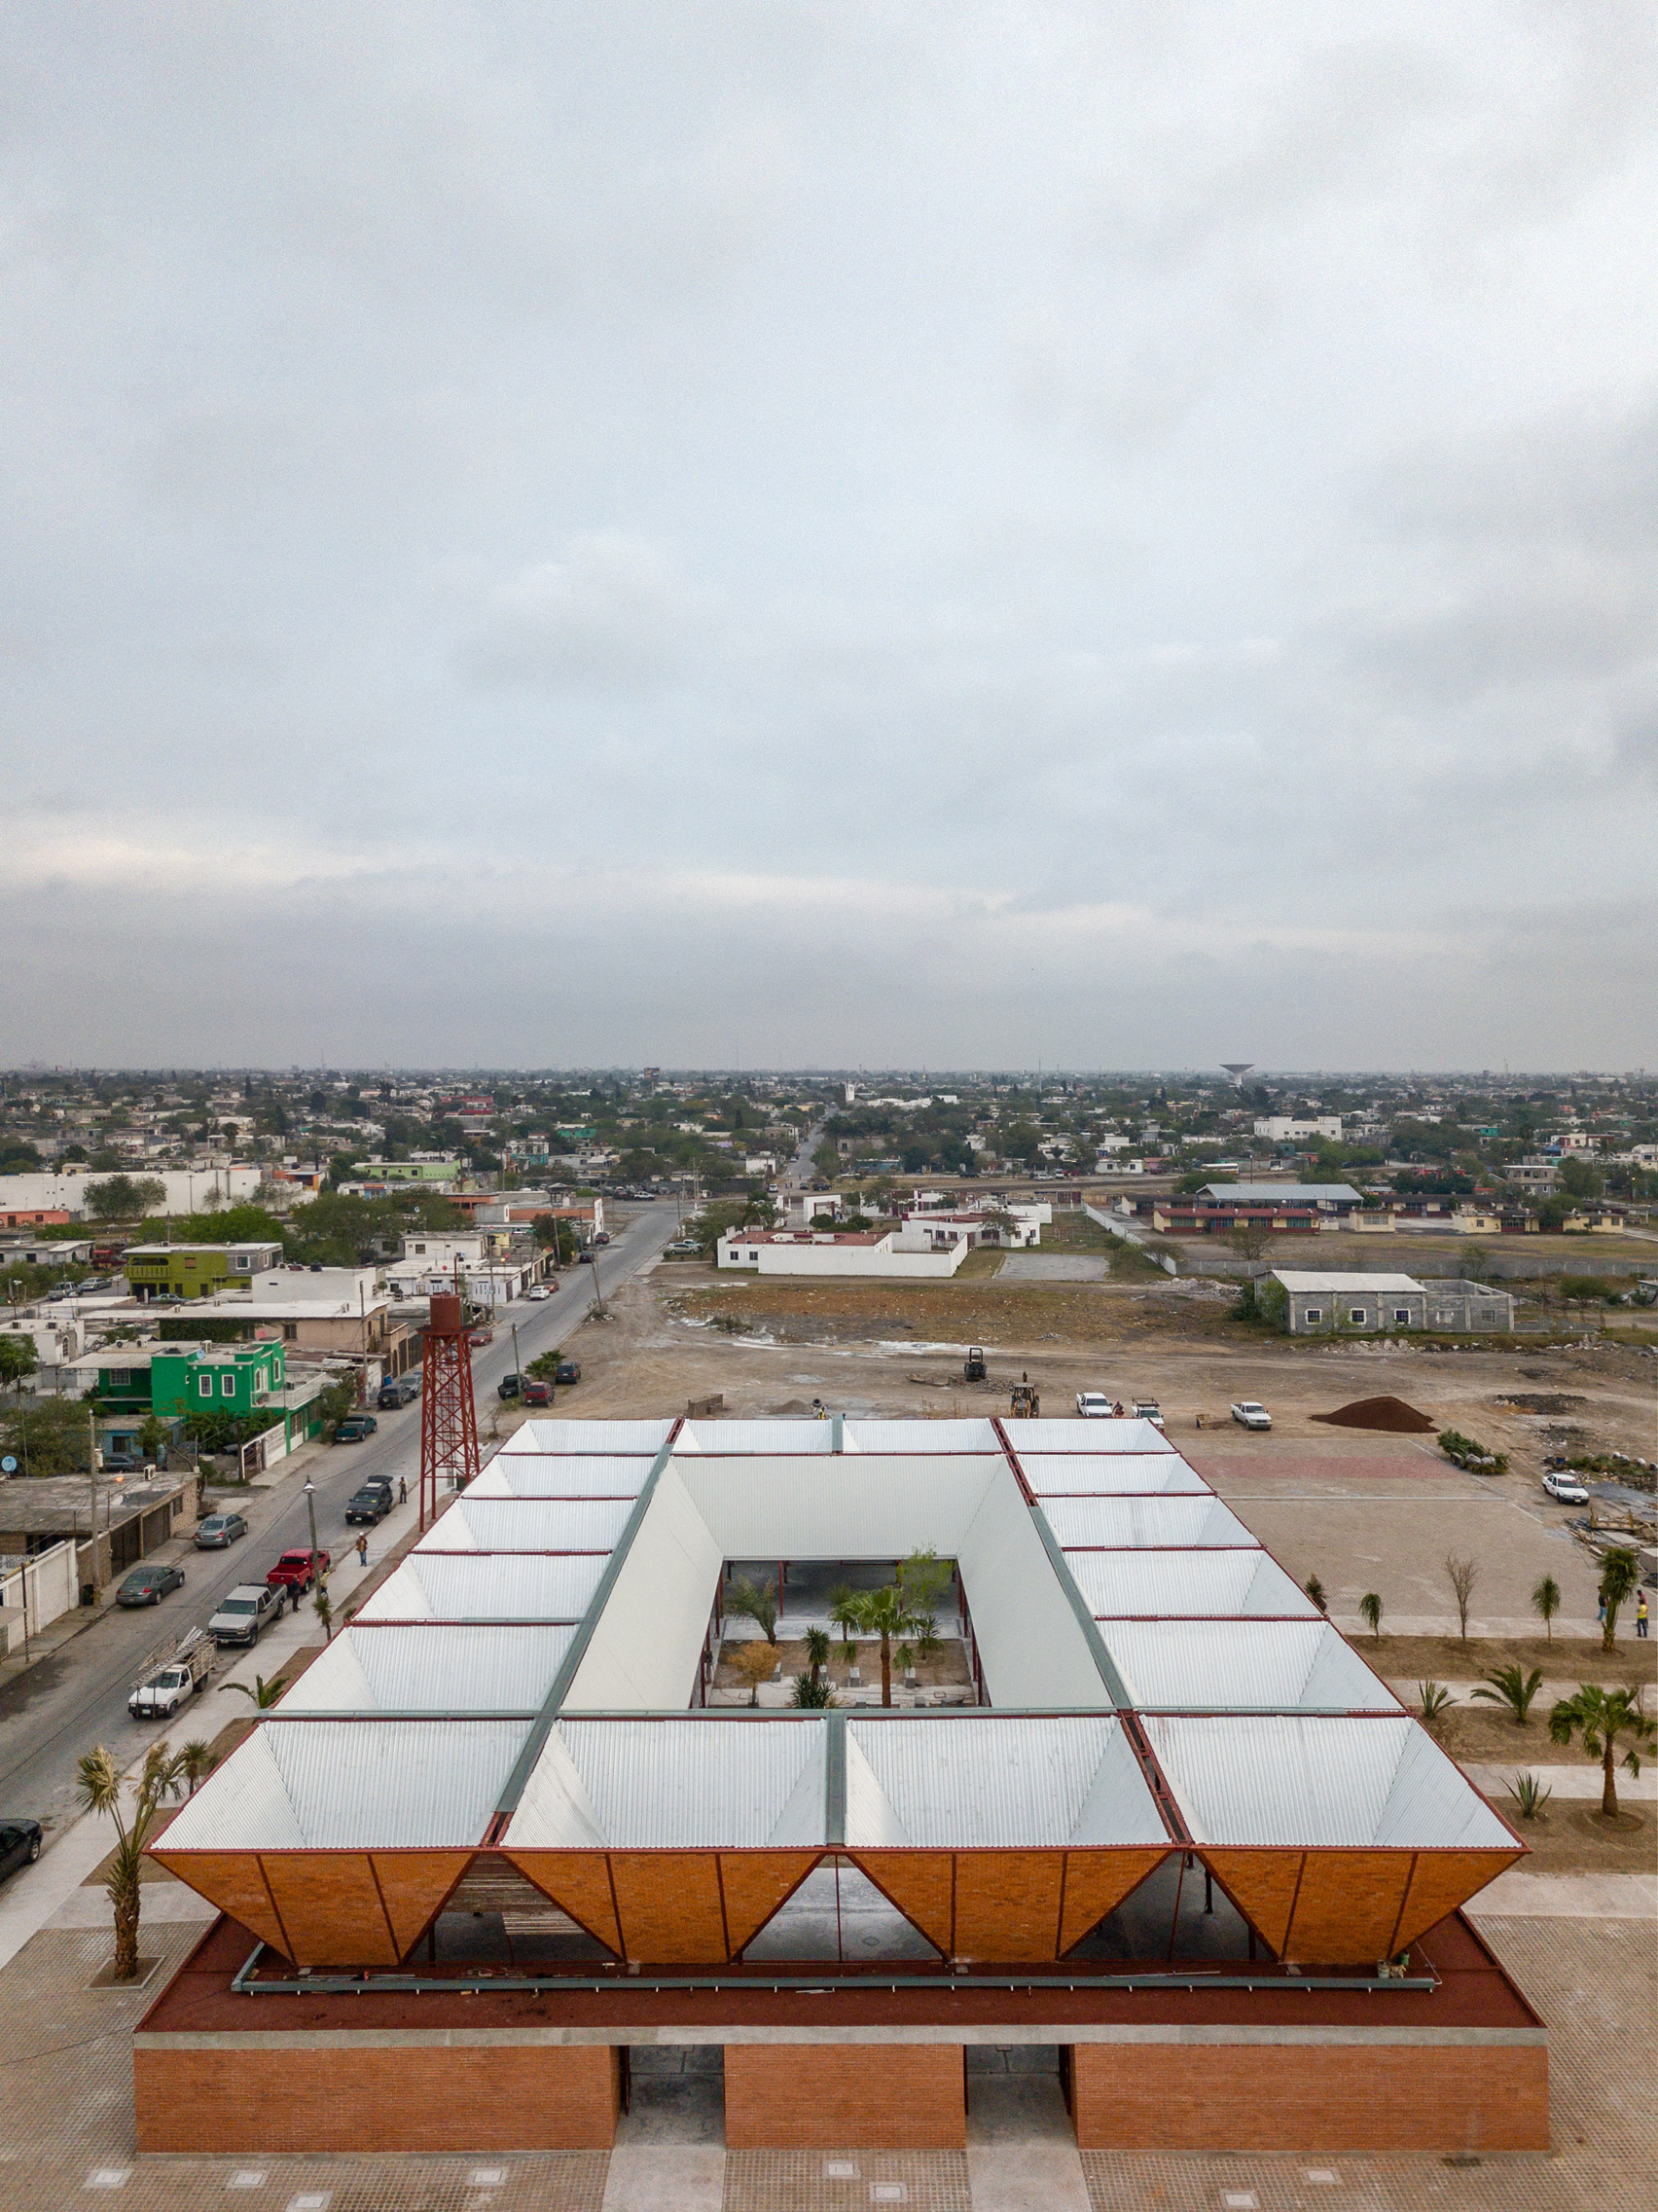 Drone footage of a market in Mexico